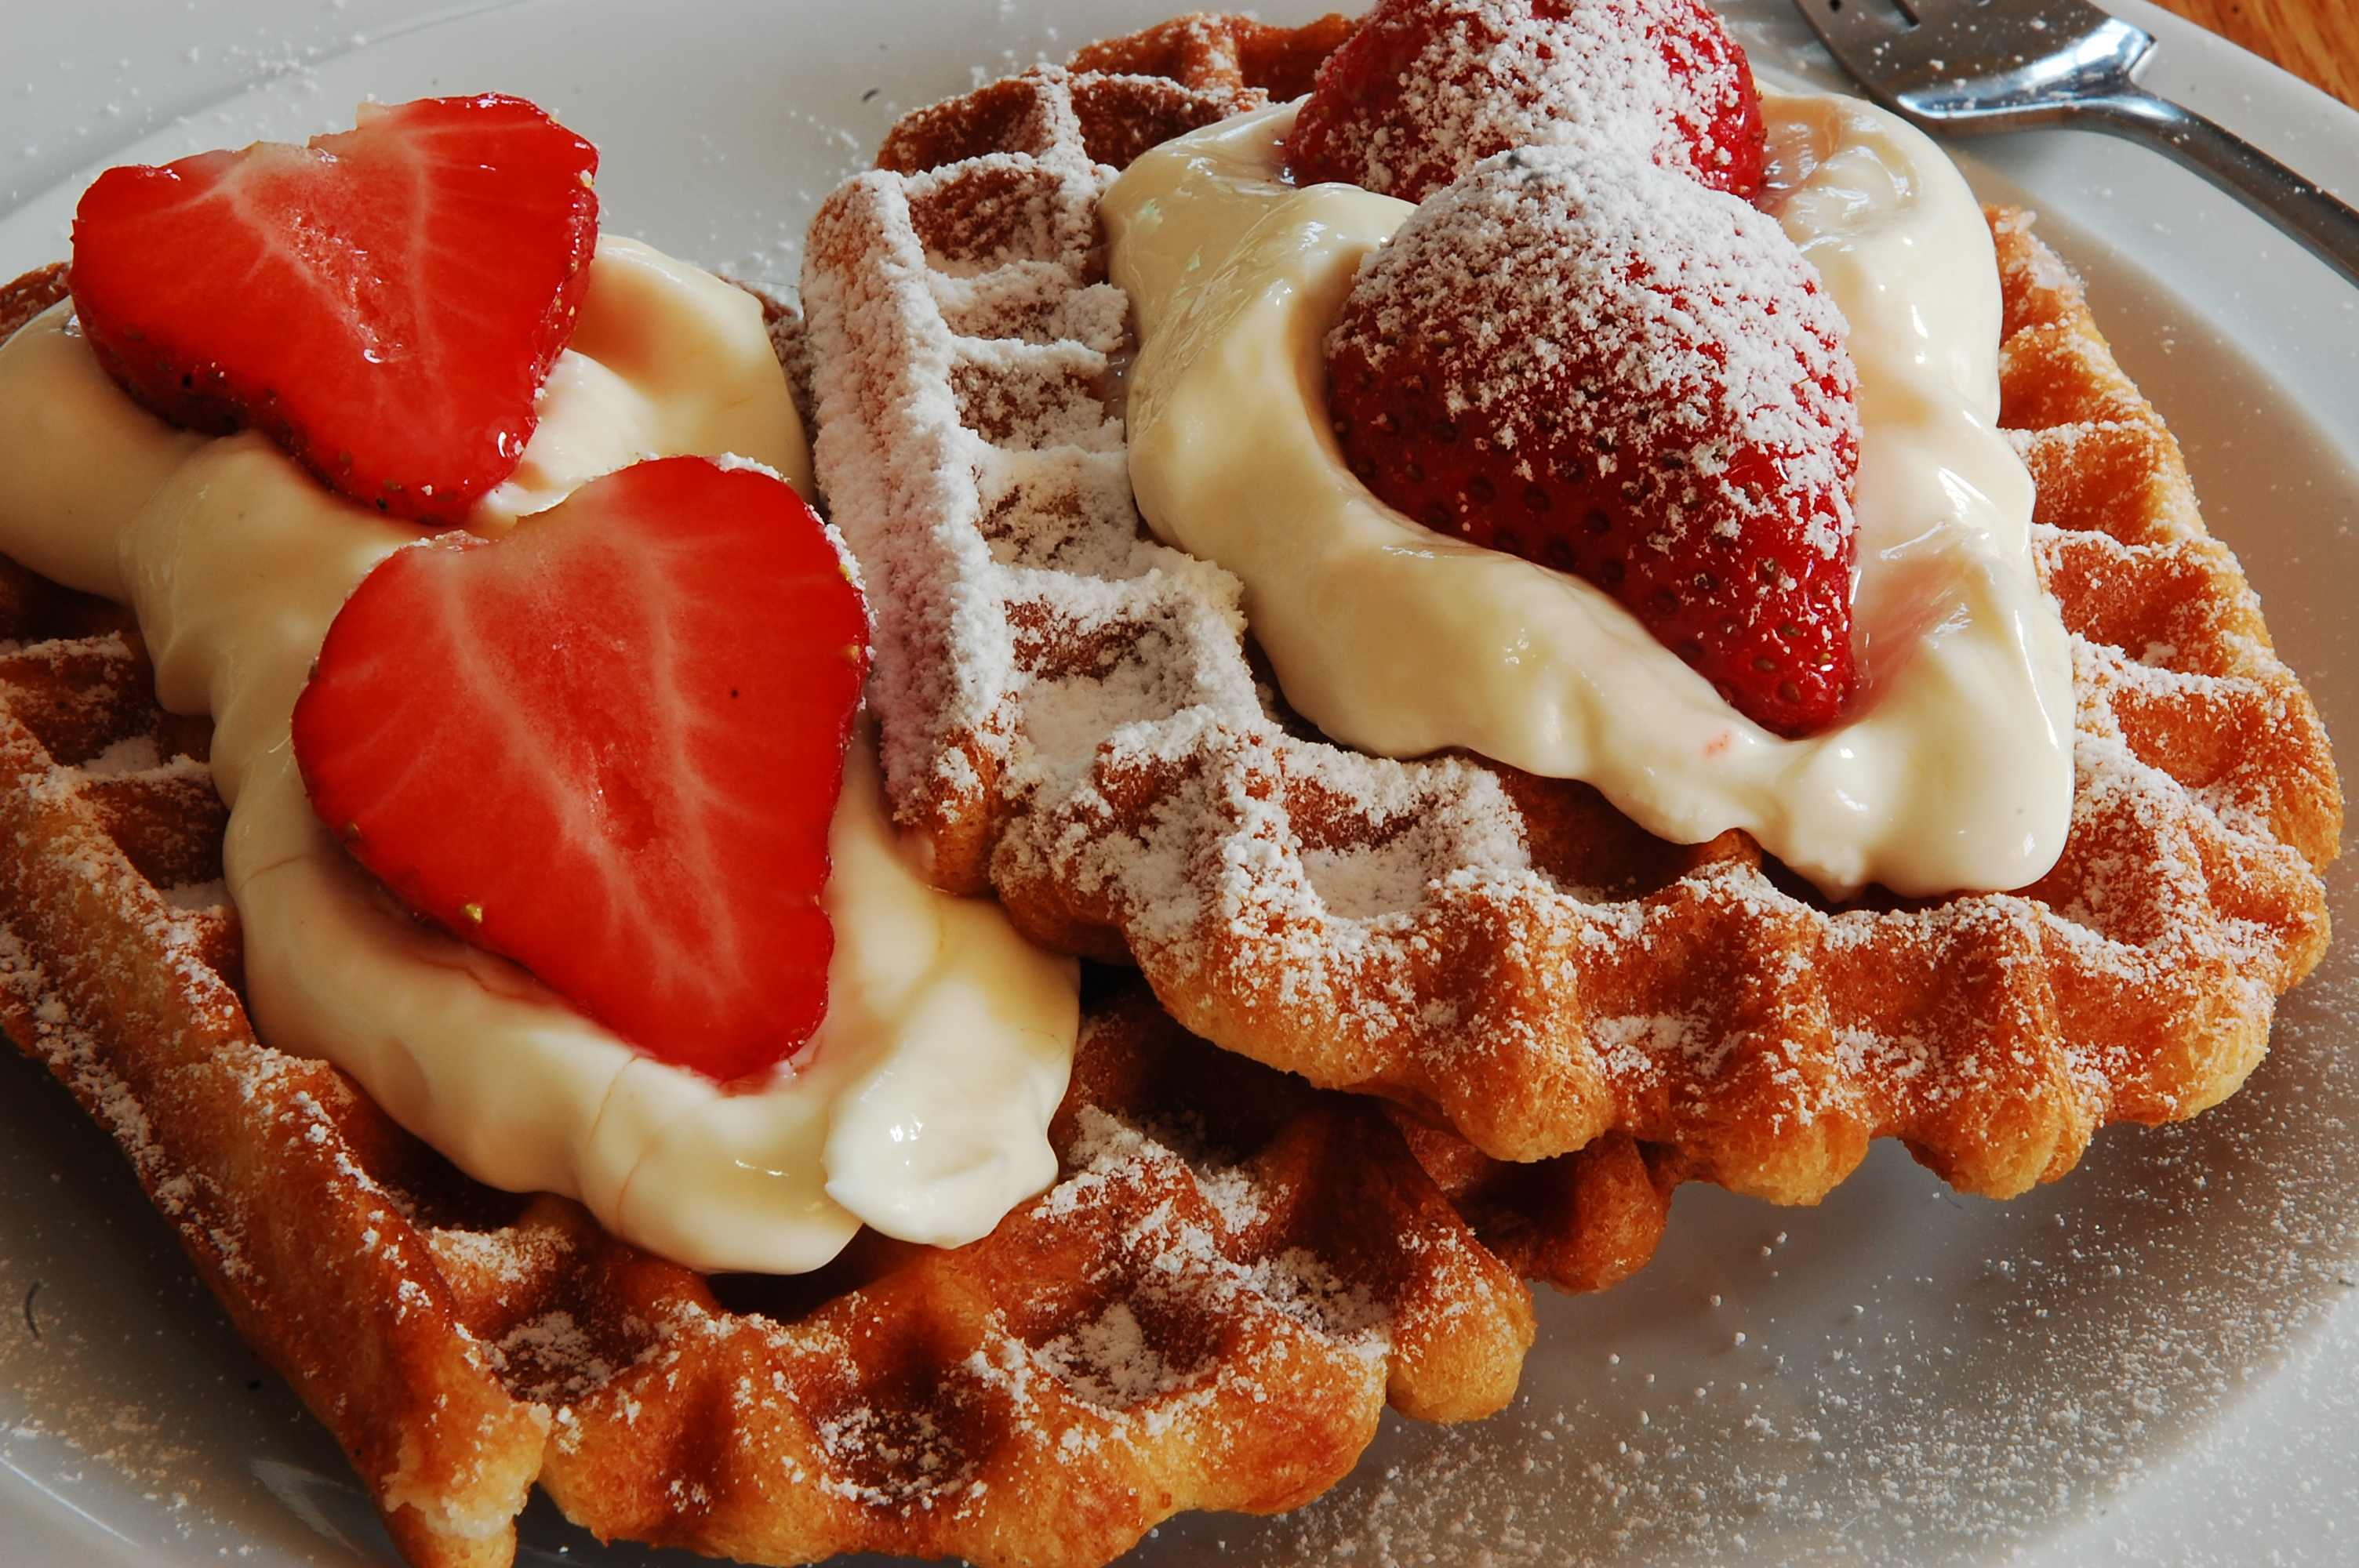 Authentic Belgian waffle recipes, regional and national | European ...